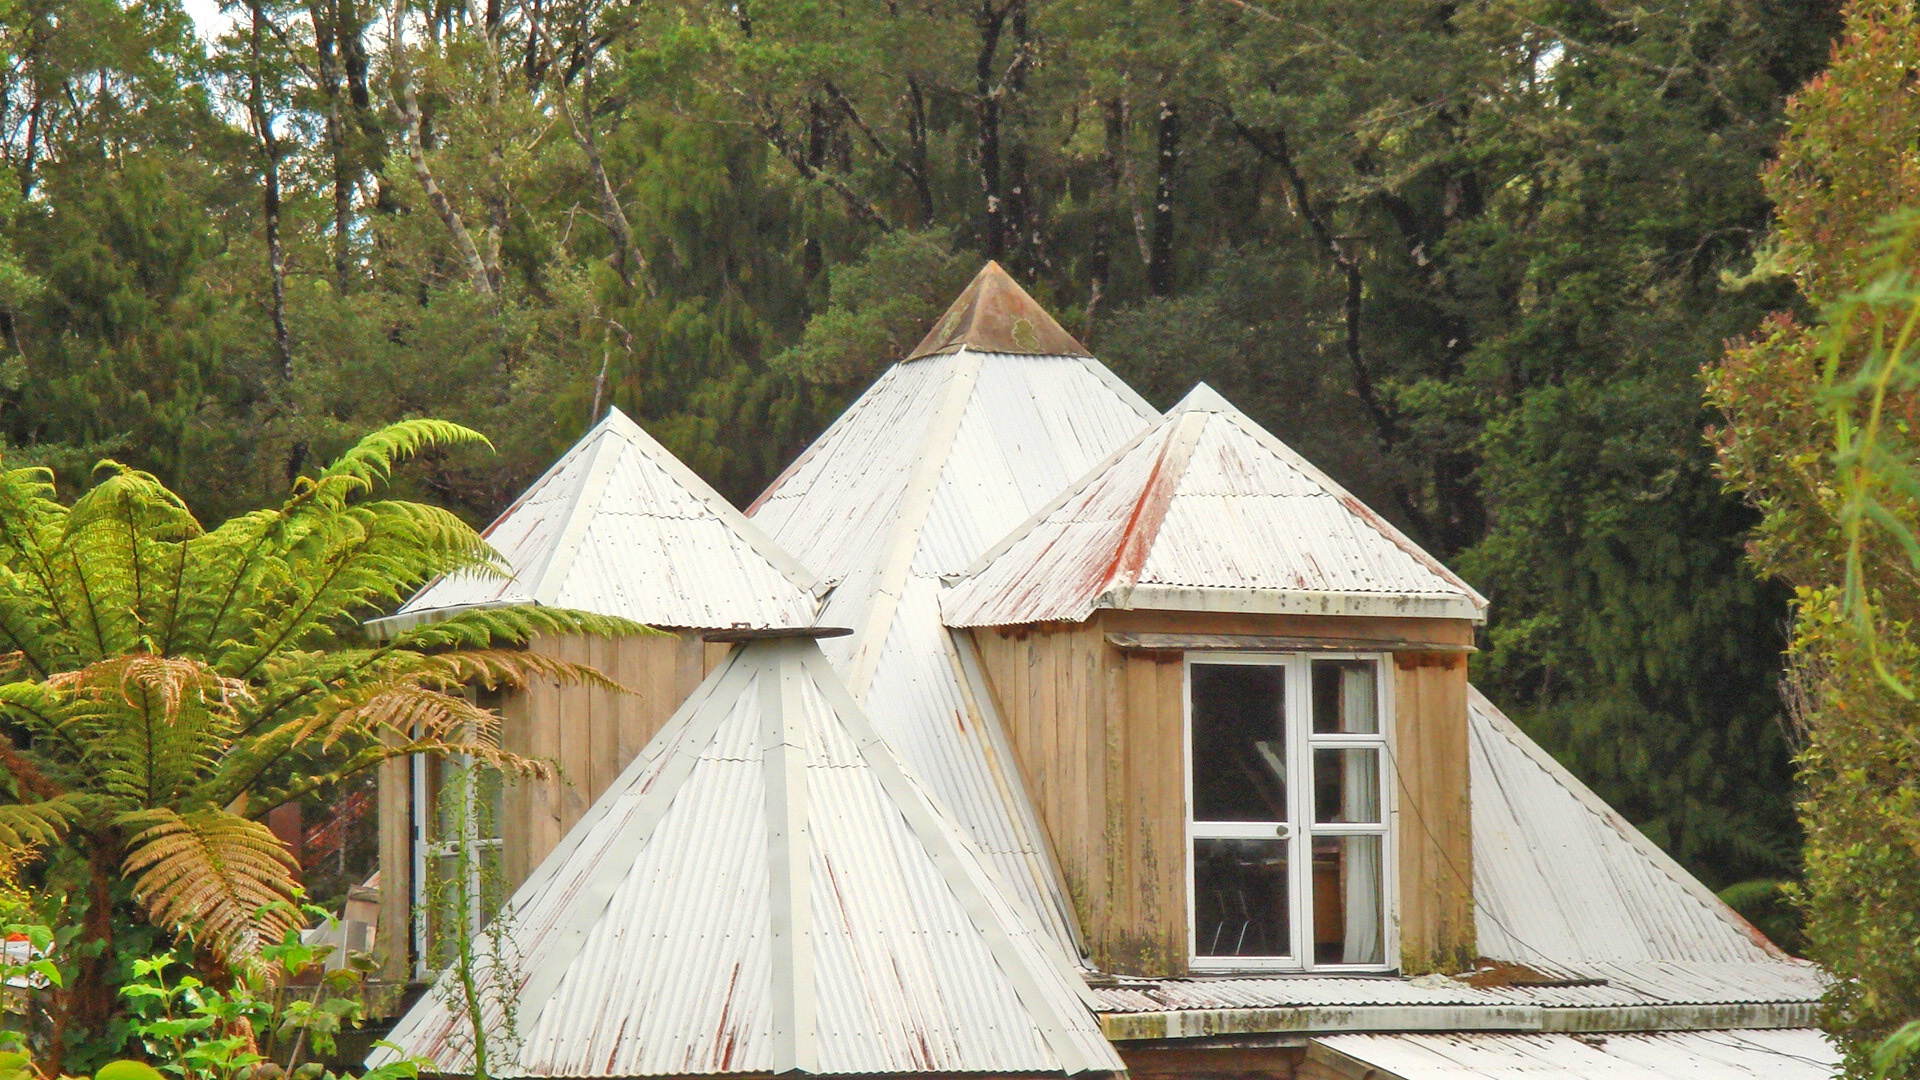 Pyramid house roof